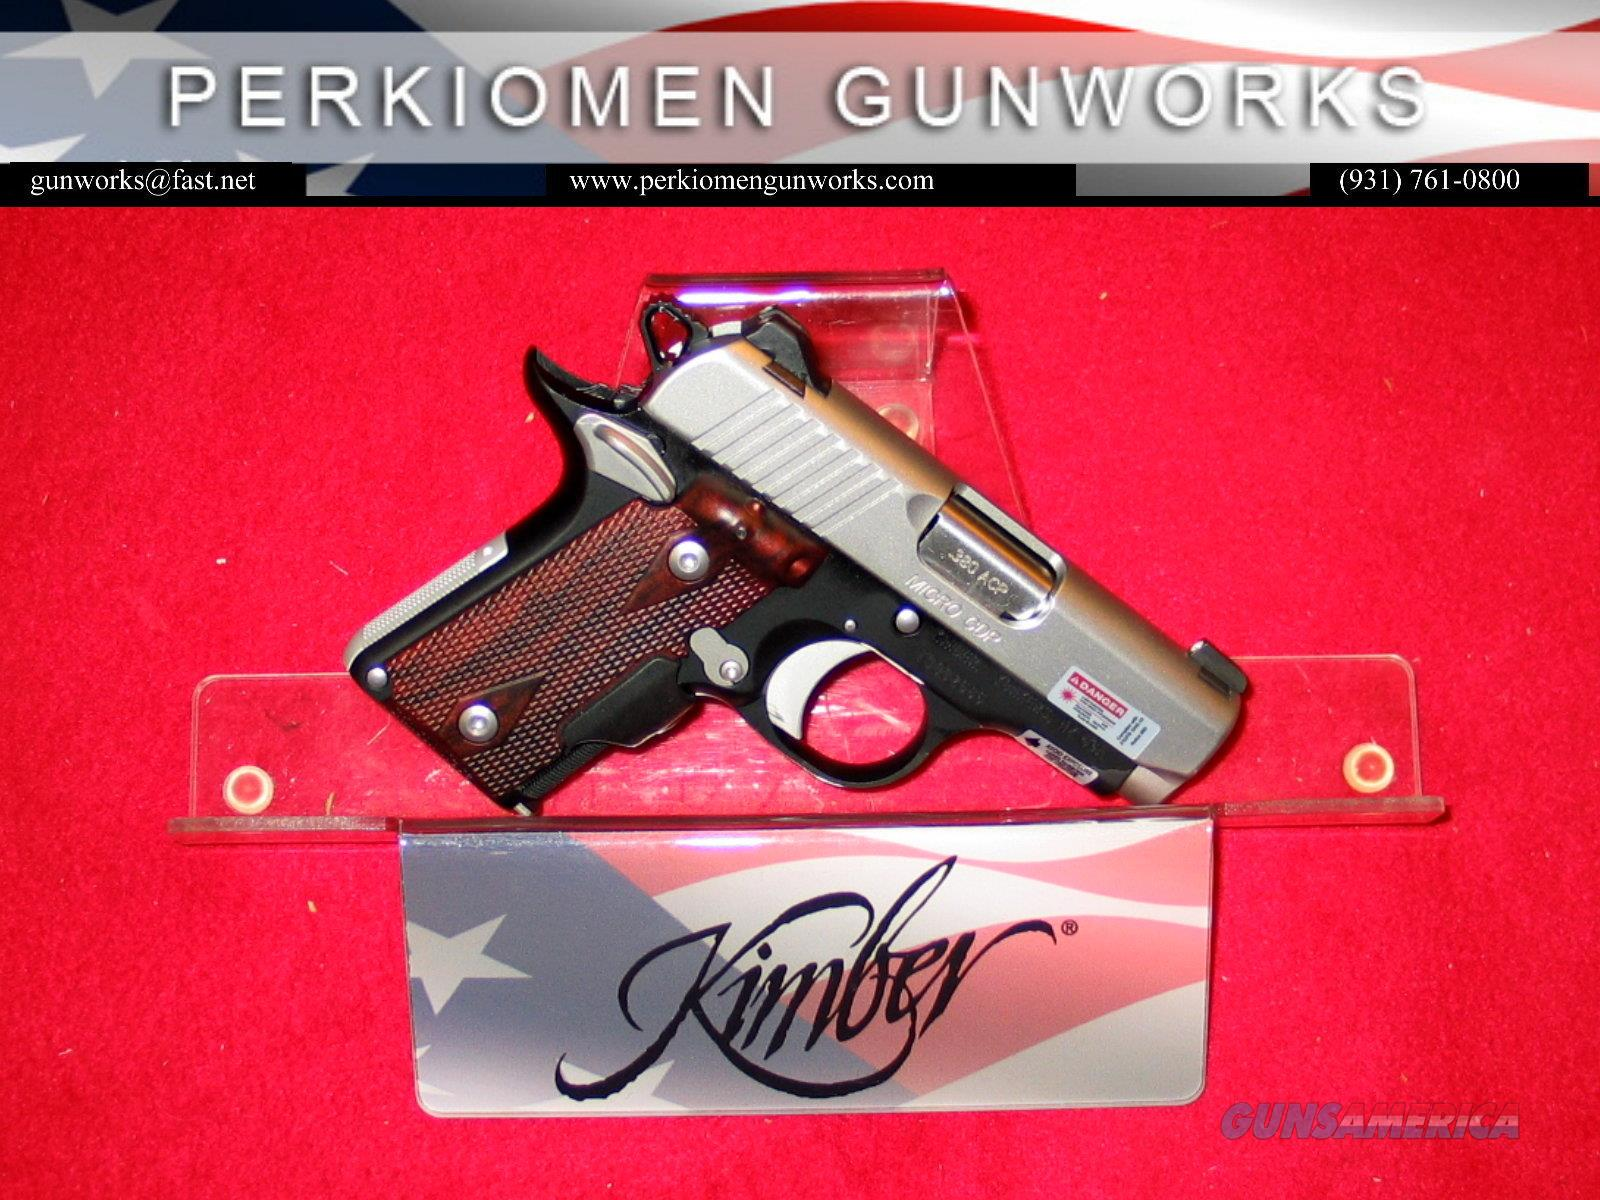 Micro CDP (LG), .380 w/Laser Grips - New in Box  Guns > Pistols > Kimber of America Pistols